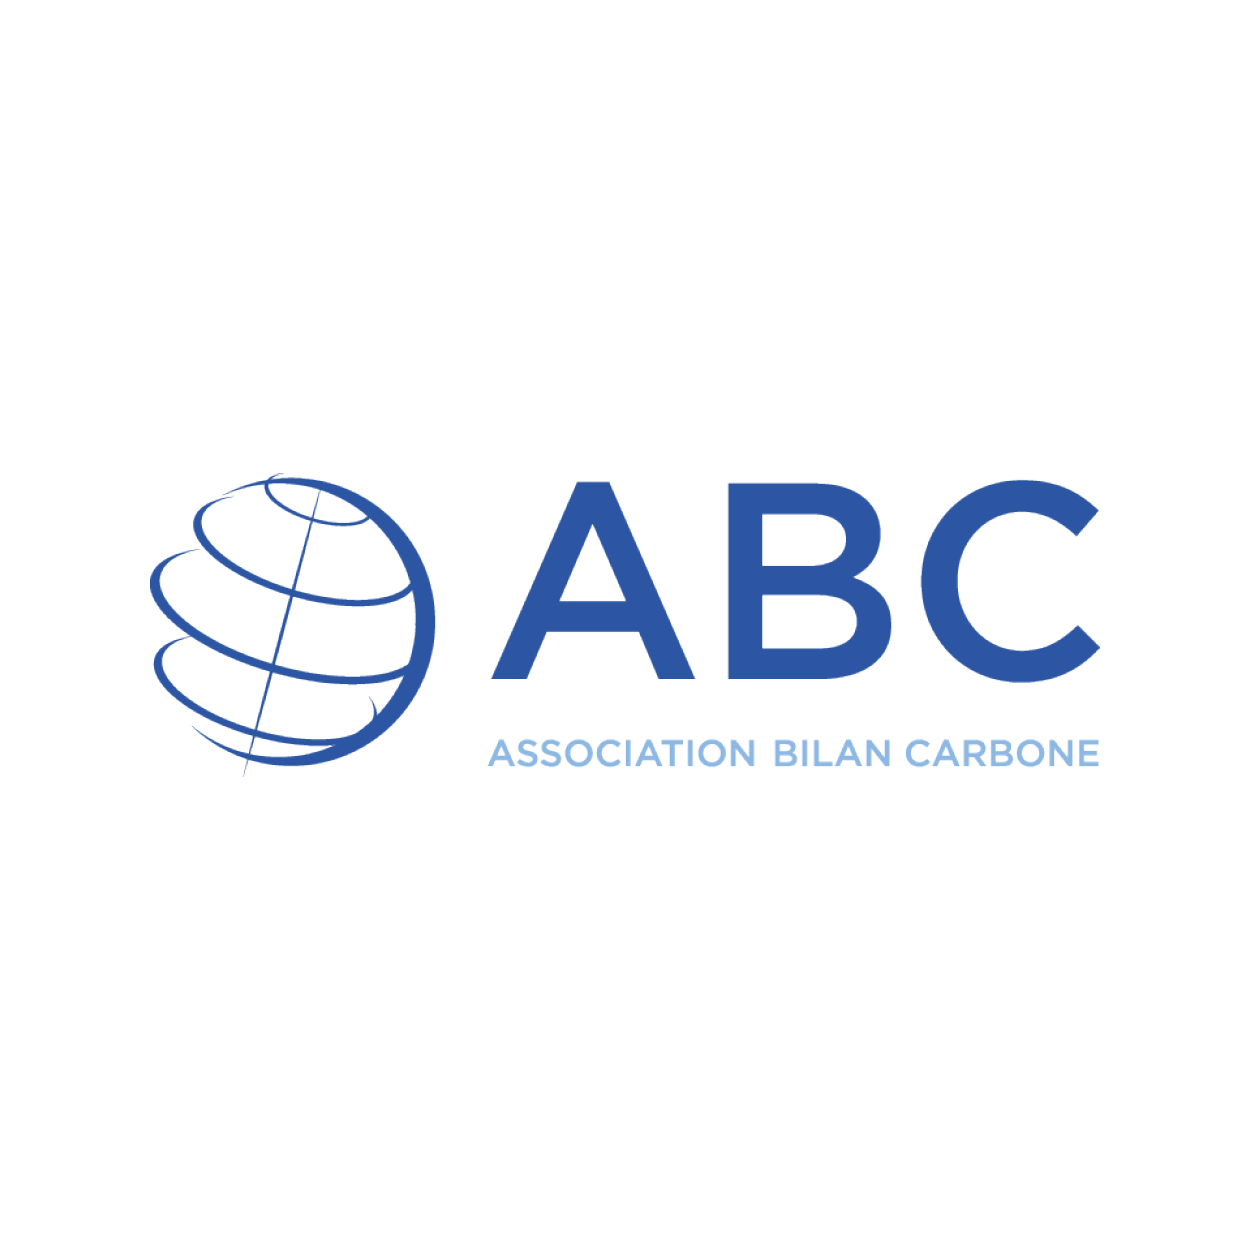 association bilan carbone